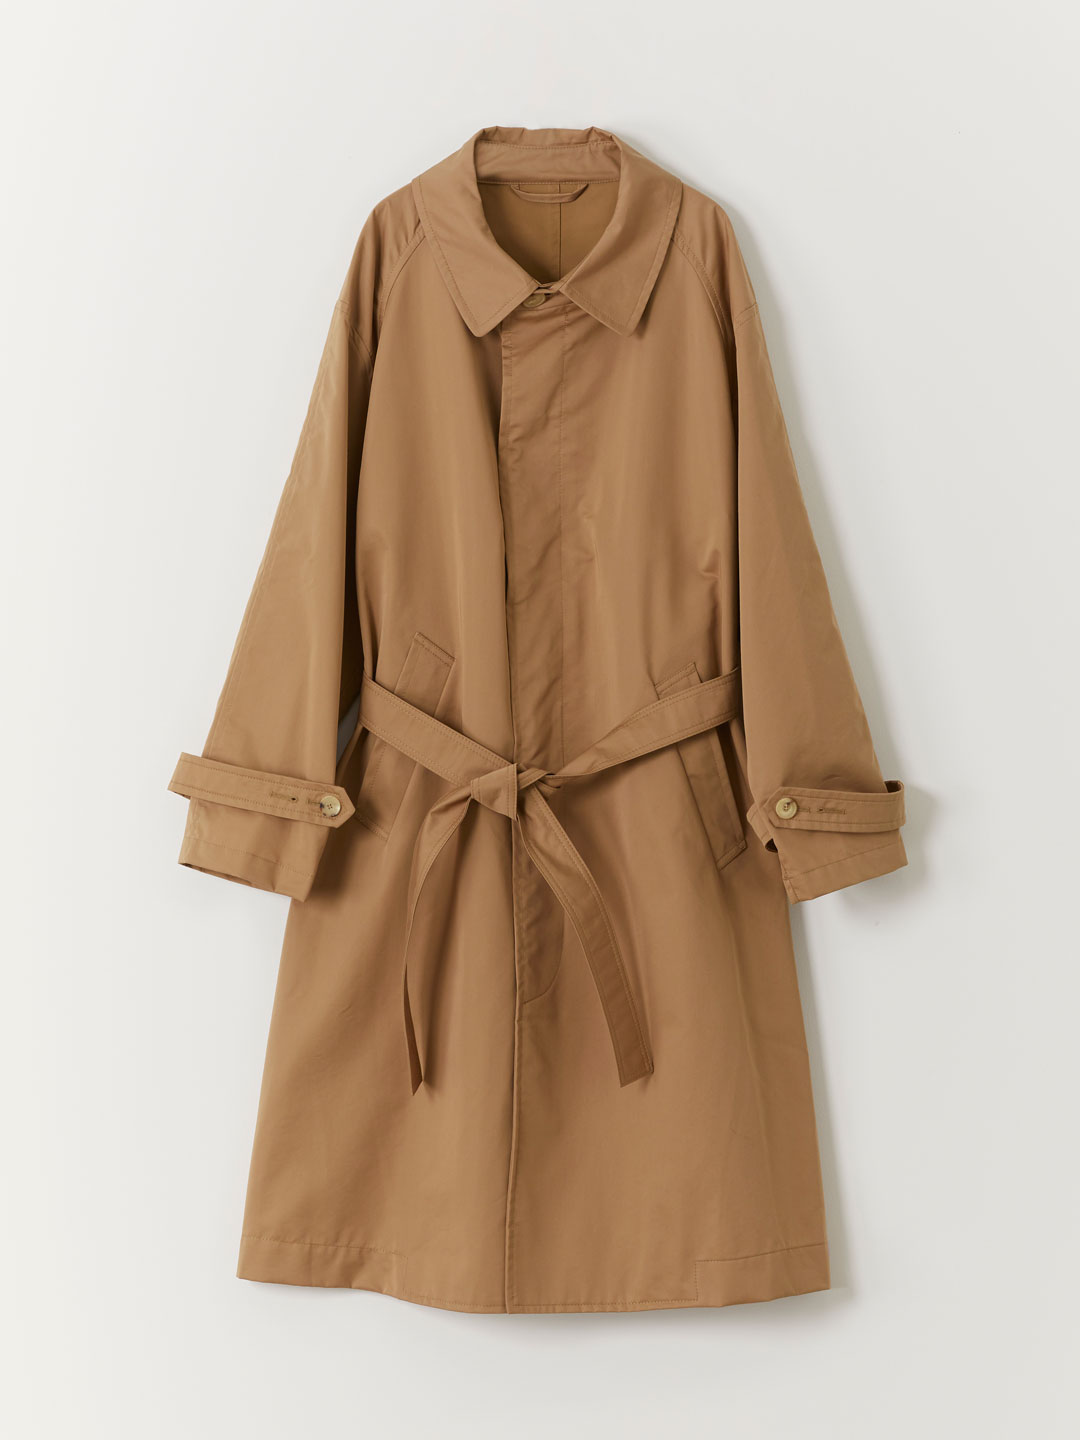 Cotton Blend Trench Coat - Beige